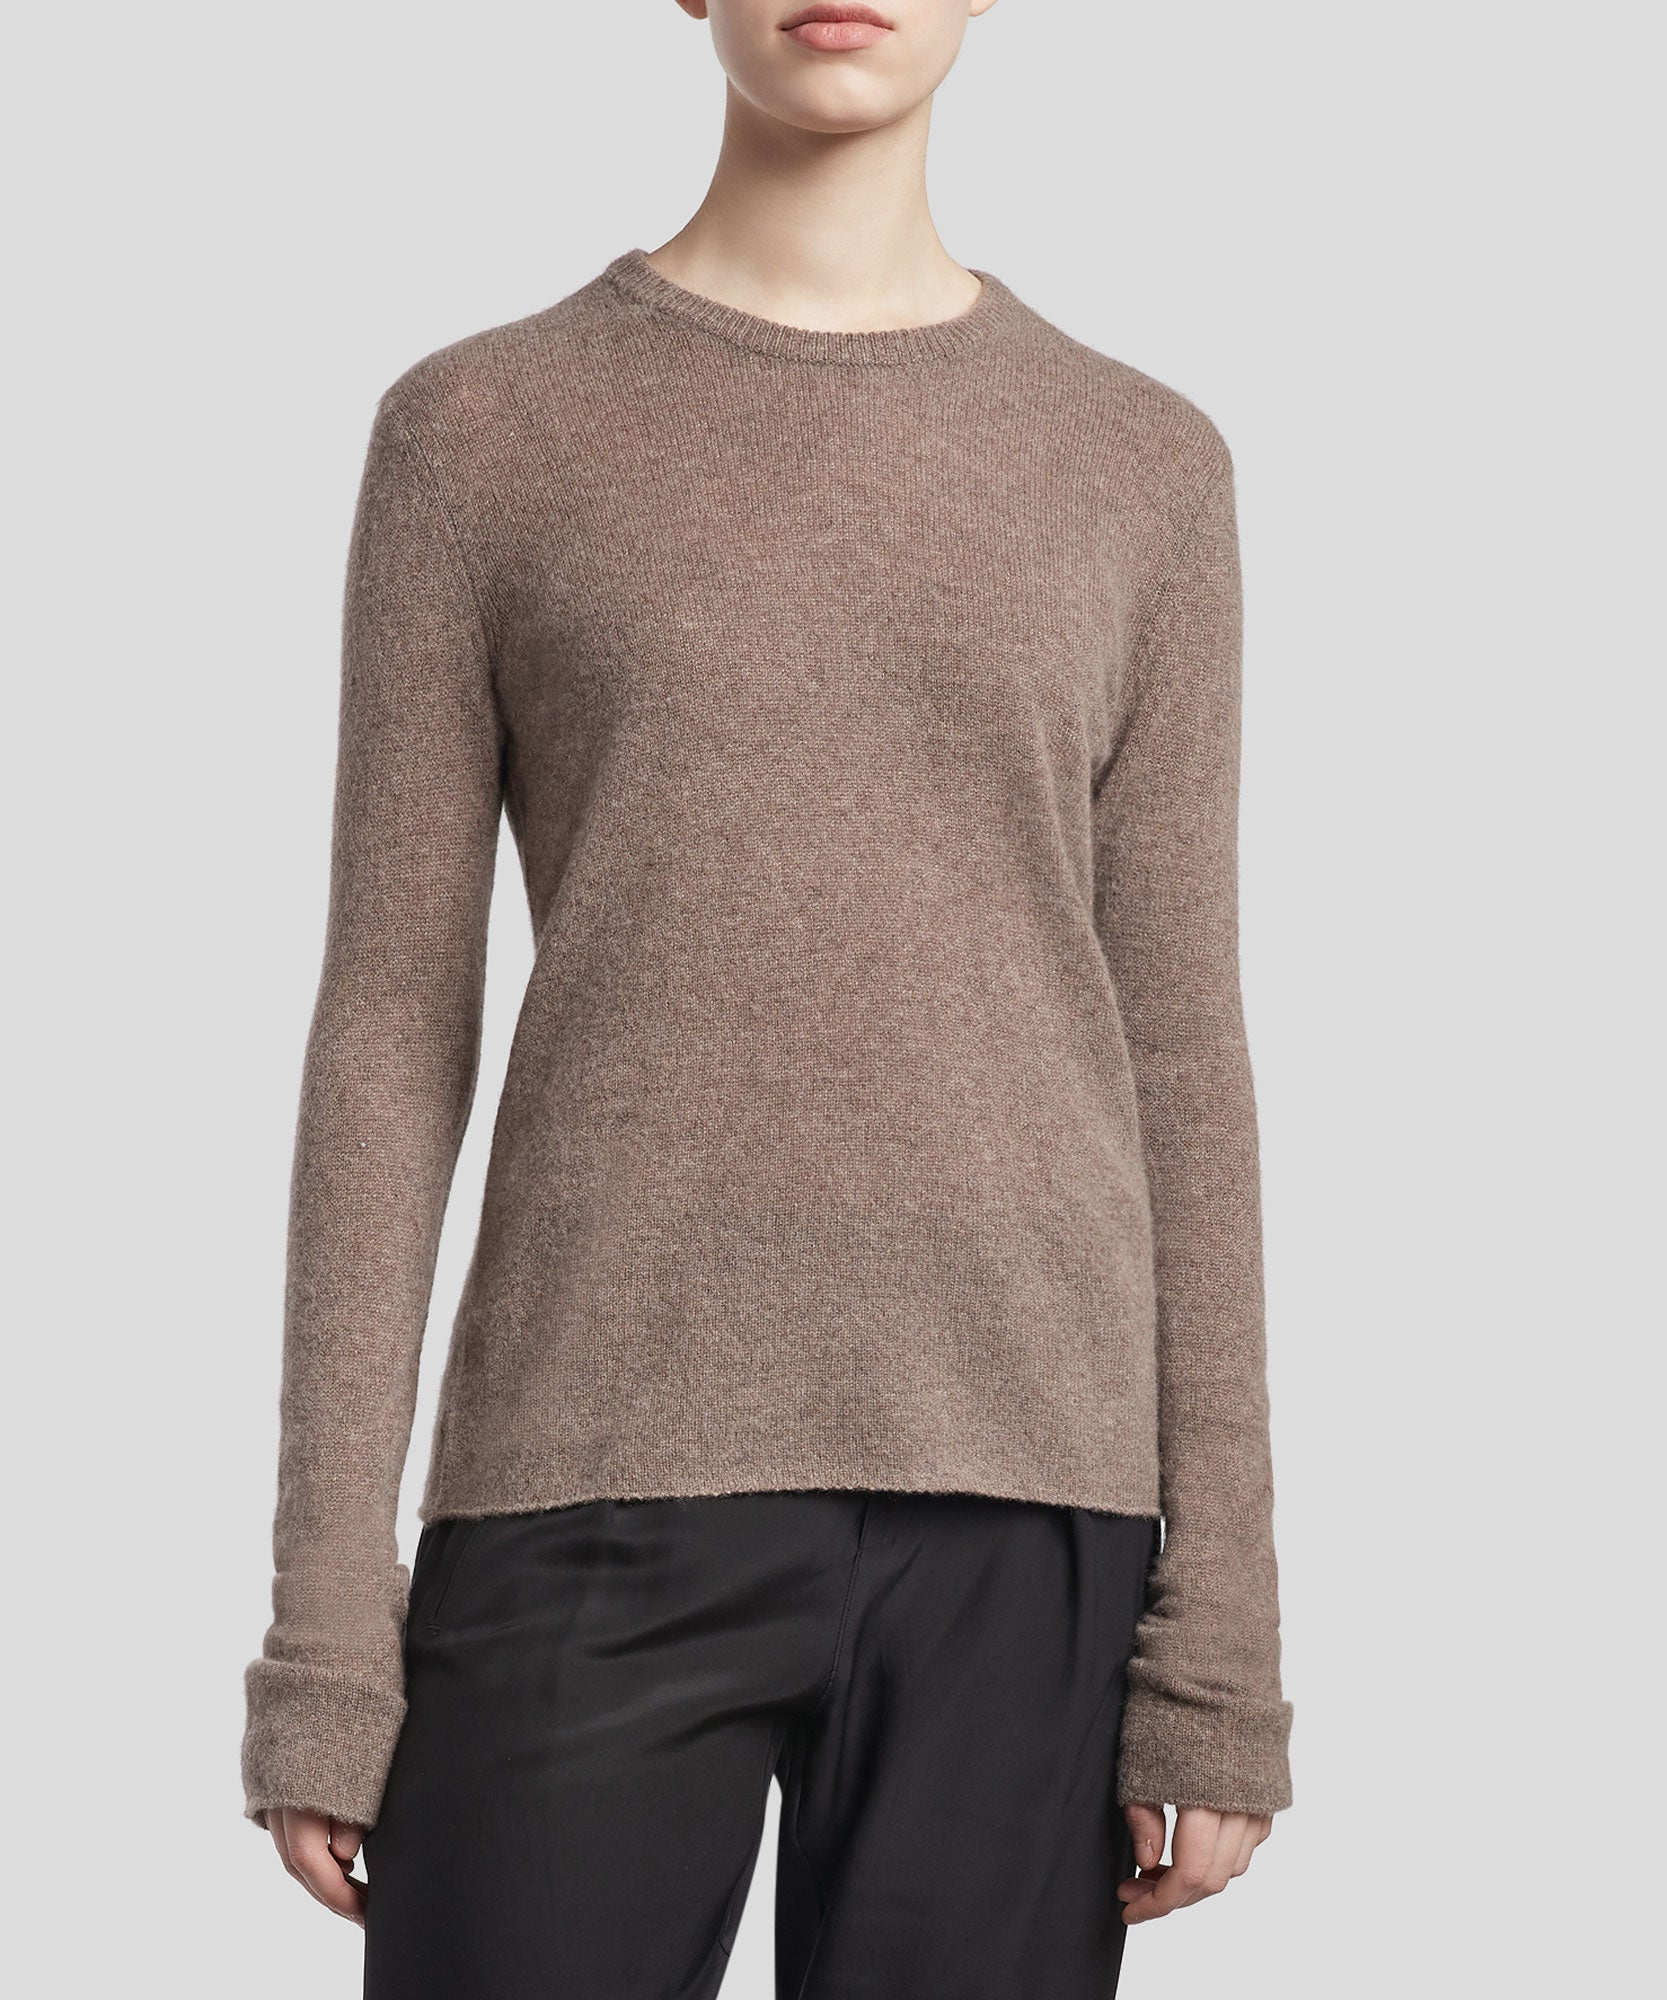 Truffle Cashmere Crew Neck Sweater - Women's Luxe Sweater by ATM Anthony Thomas Melillo